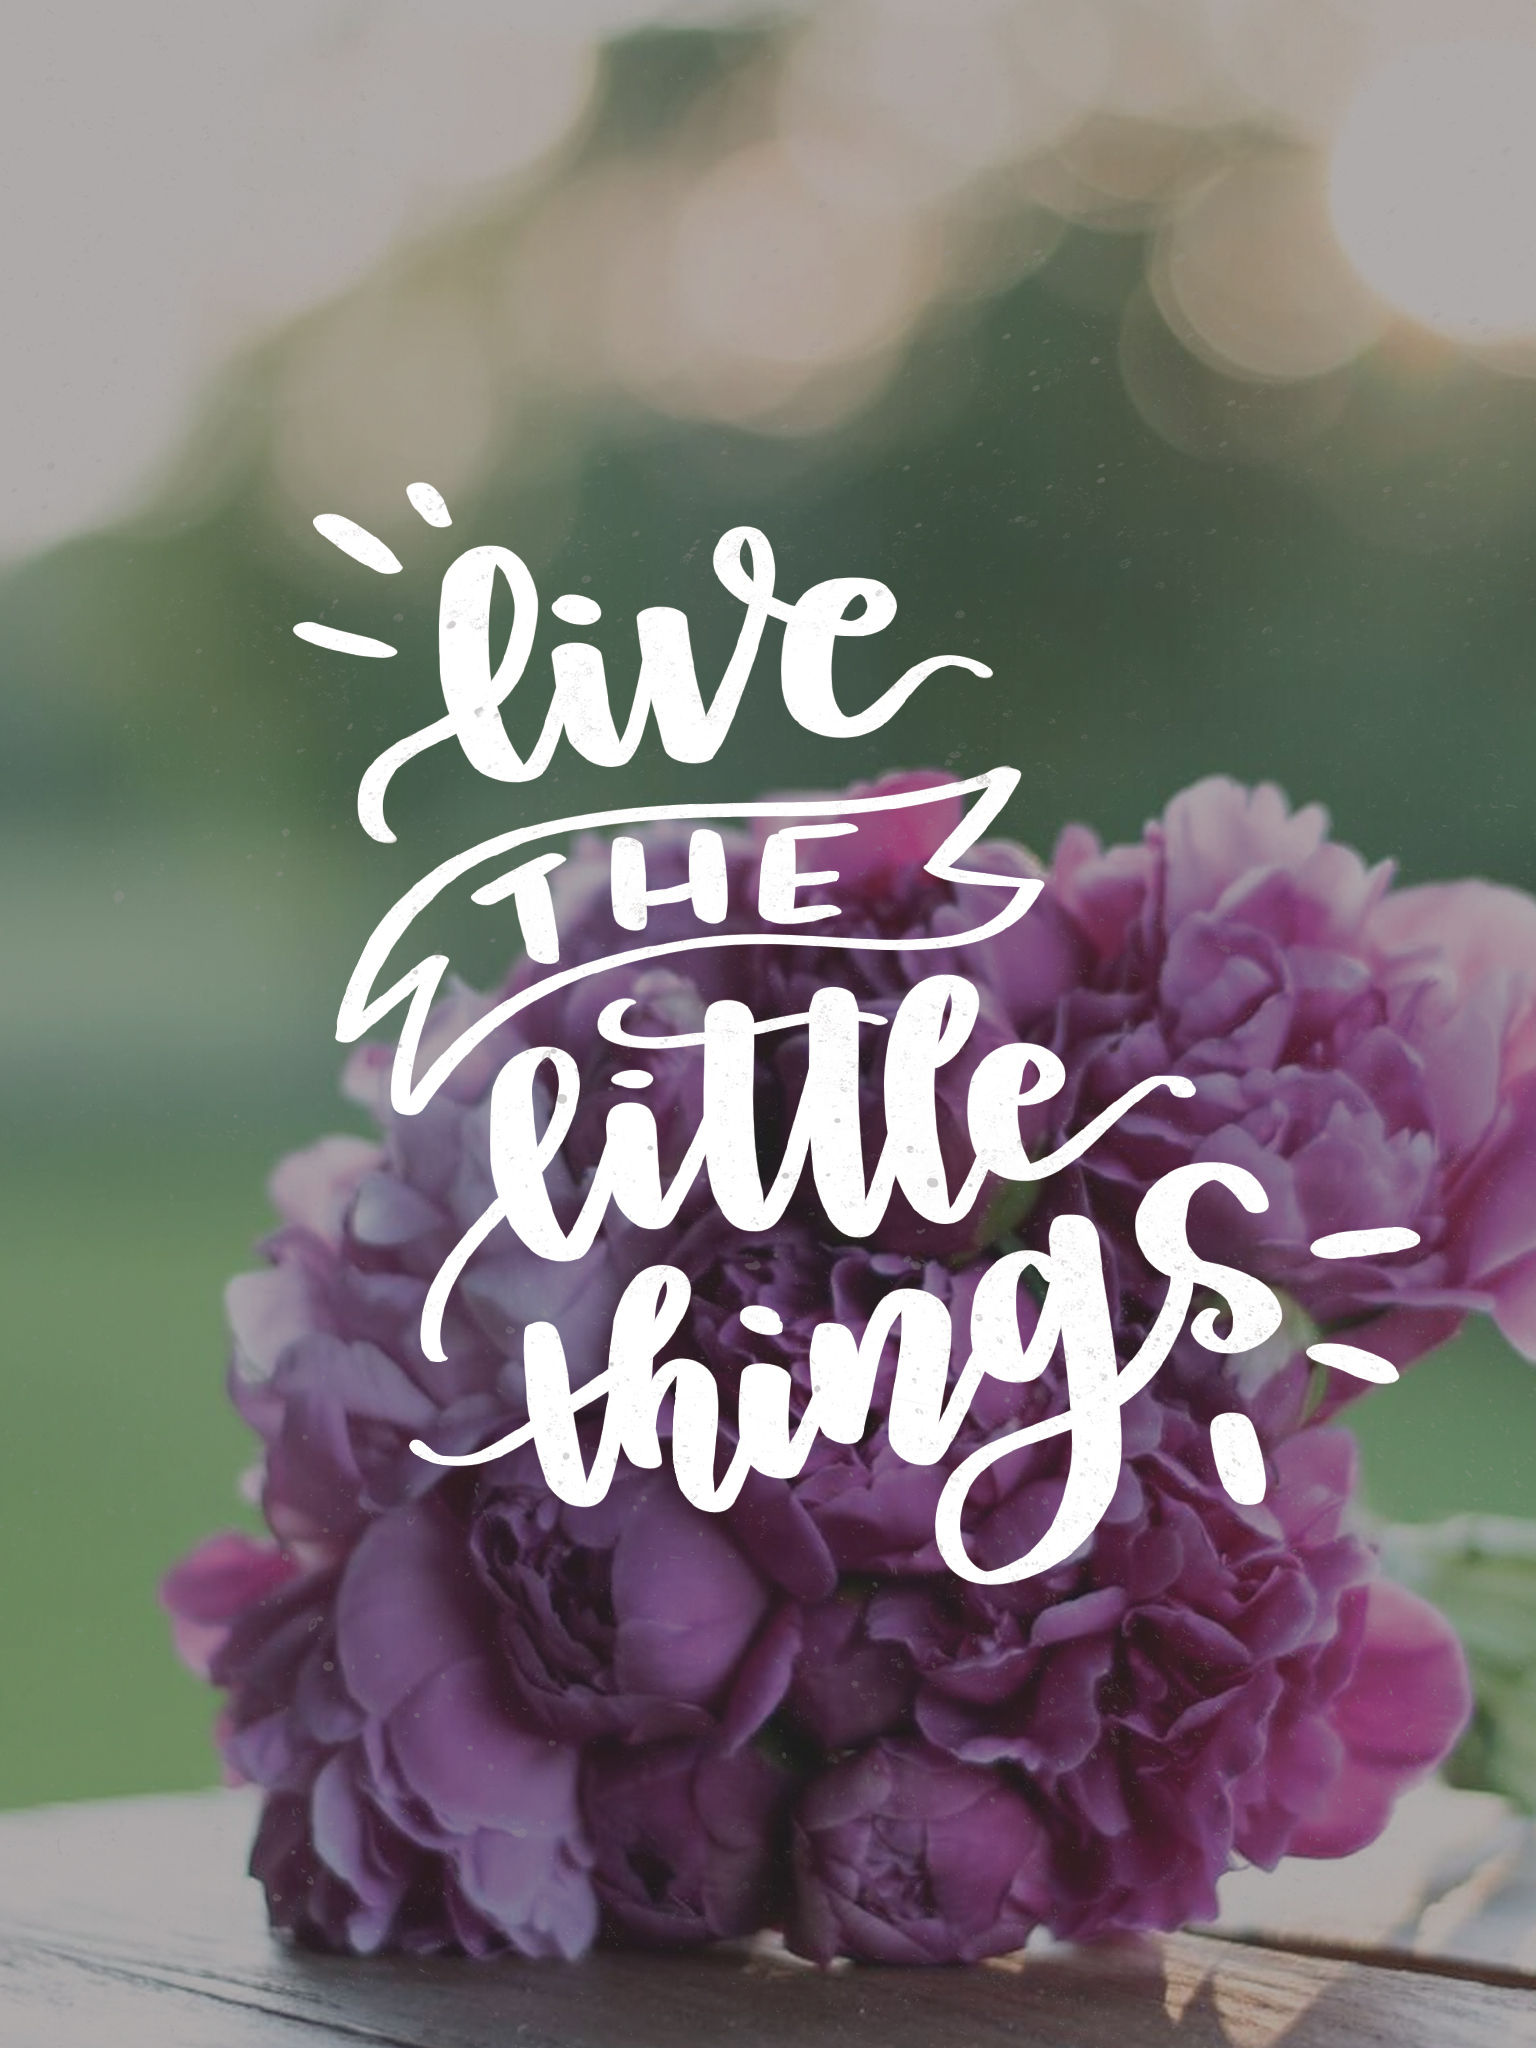 live the little things - july tech wallpapers